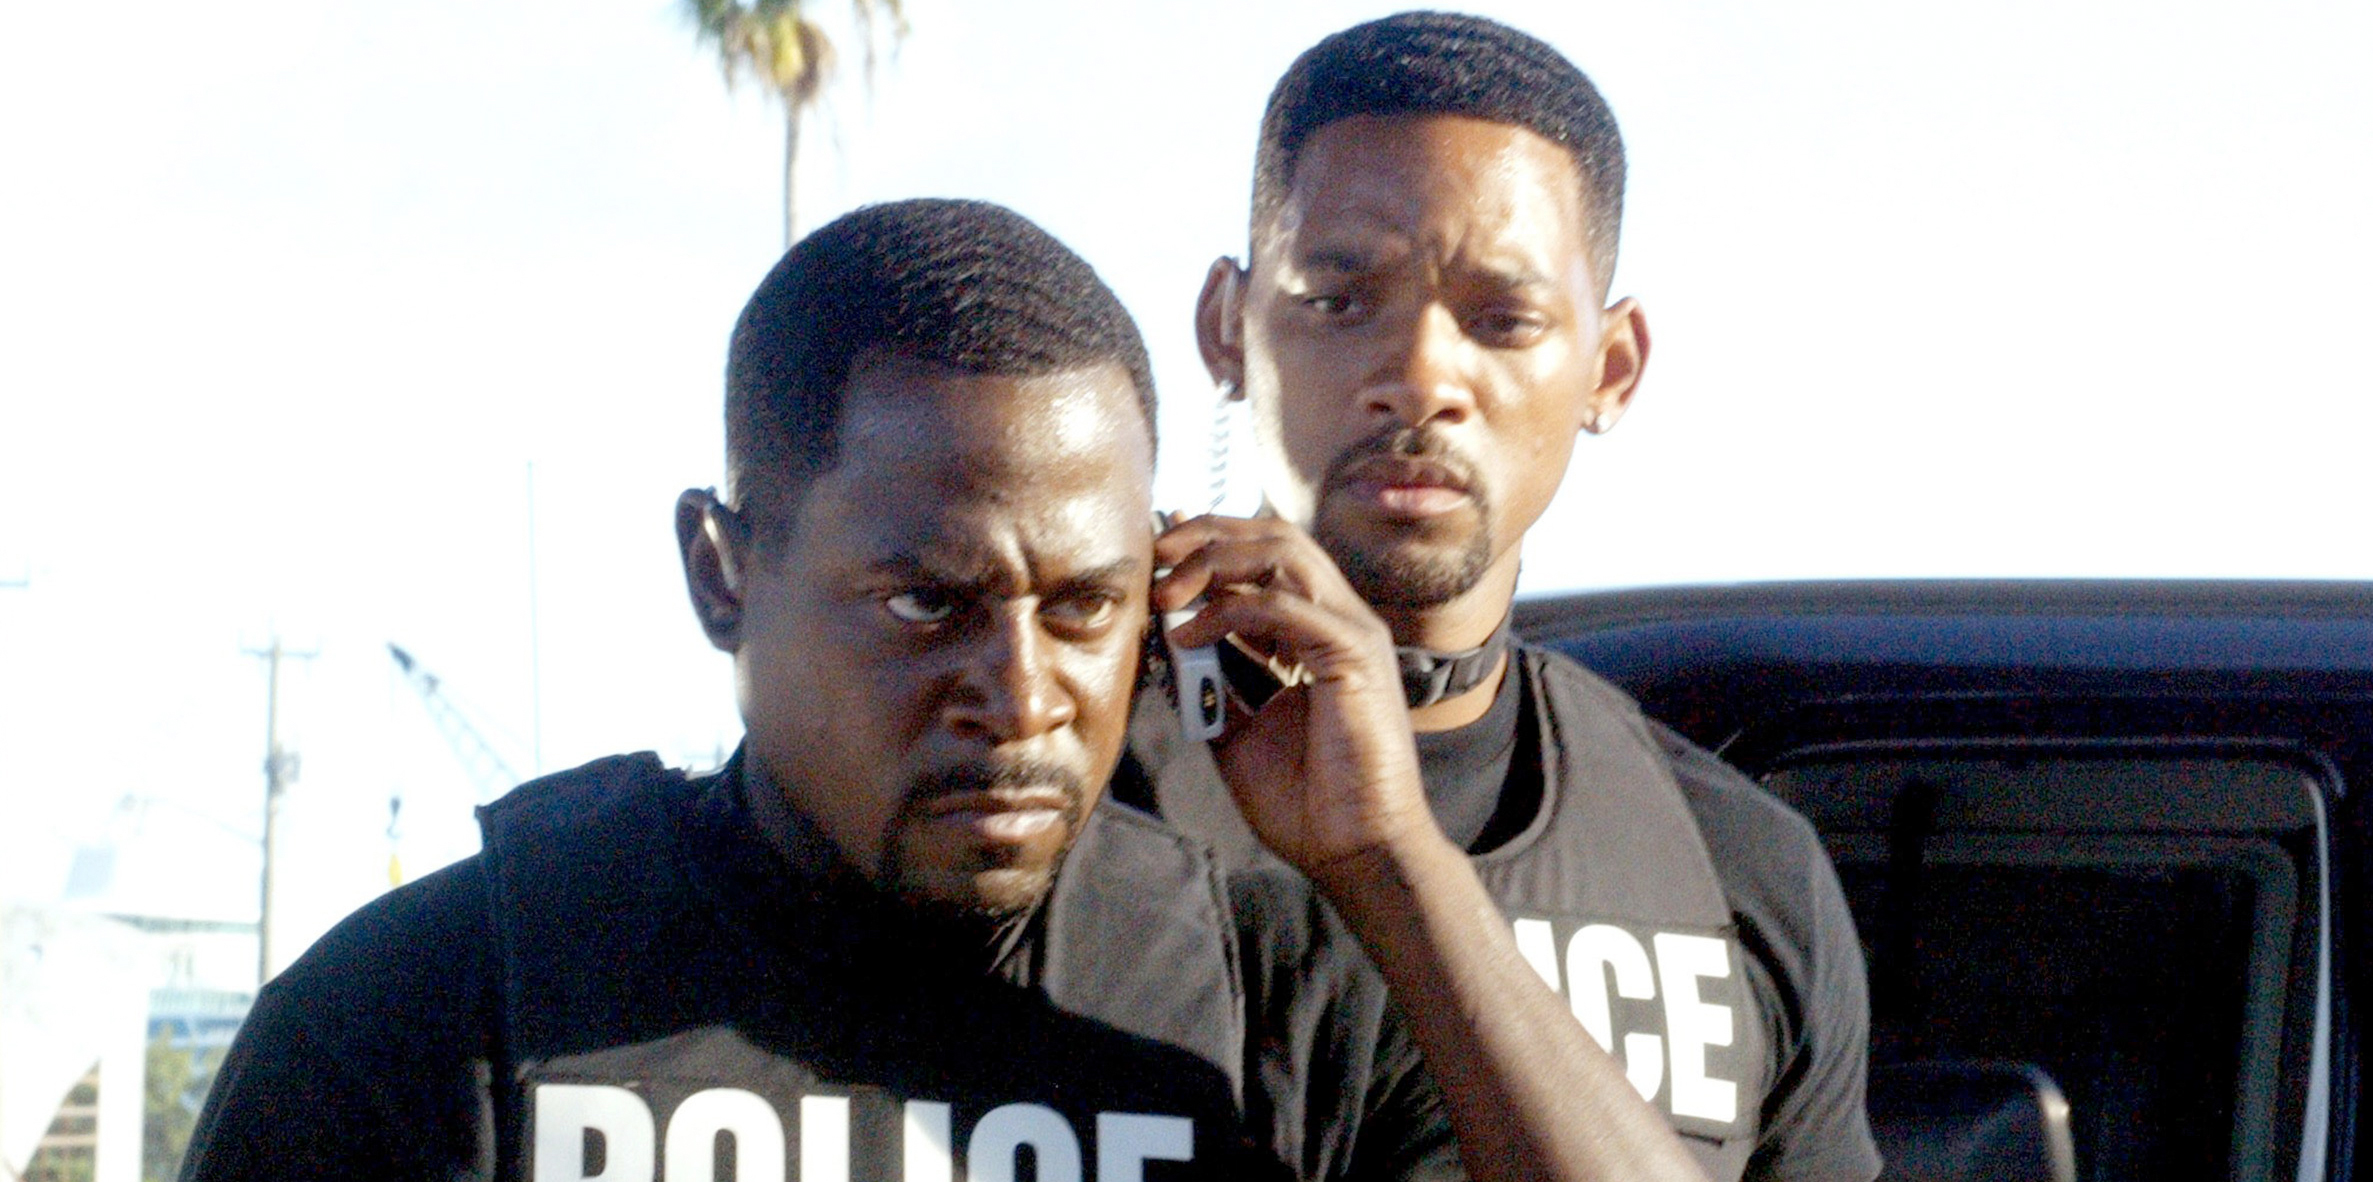 Bad Boys 3 Probably Isn T Going To Happen According To Martin Lawrence - Bad Boys